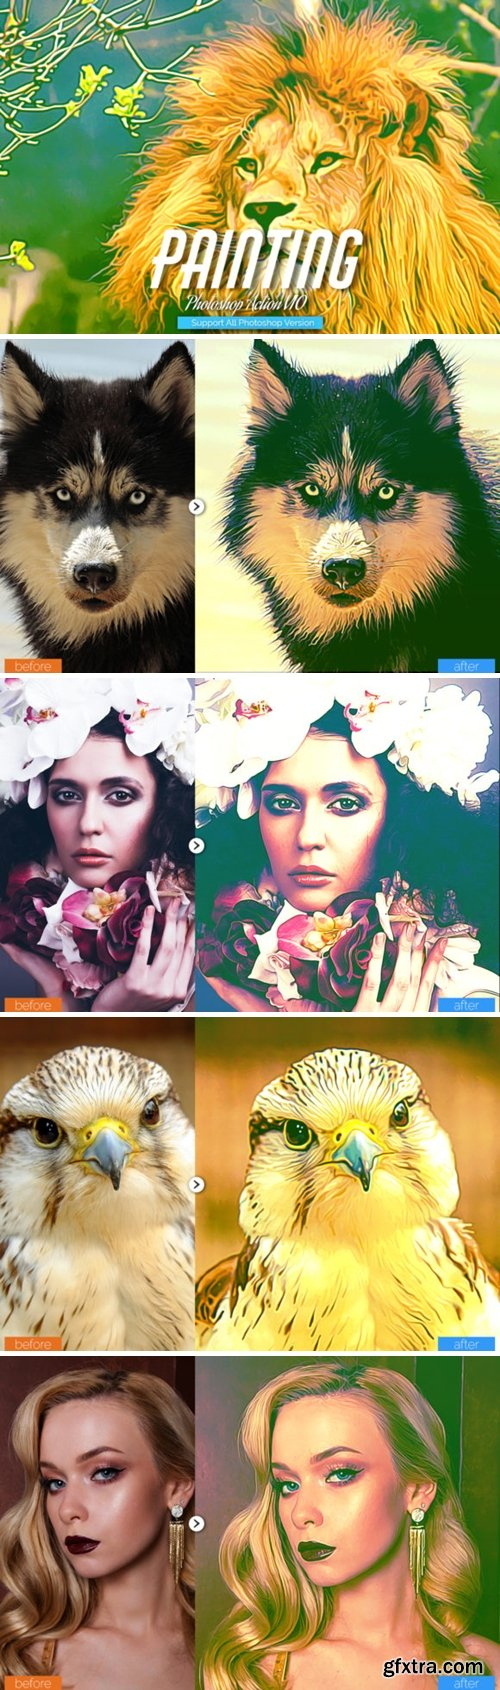 Painting Photoshop Action V10 5735094